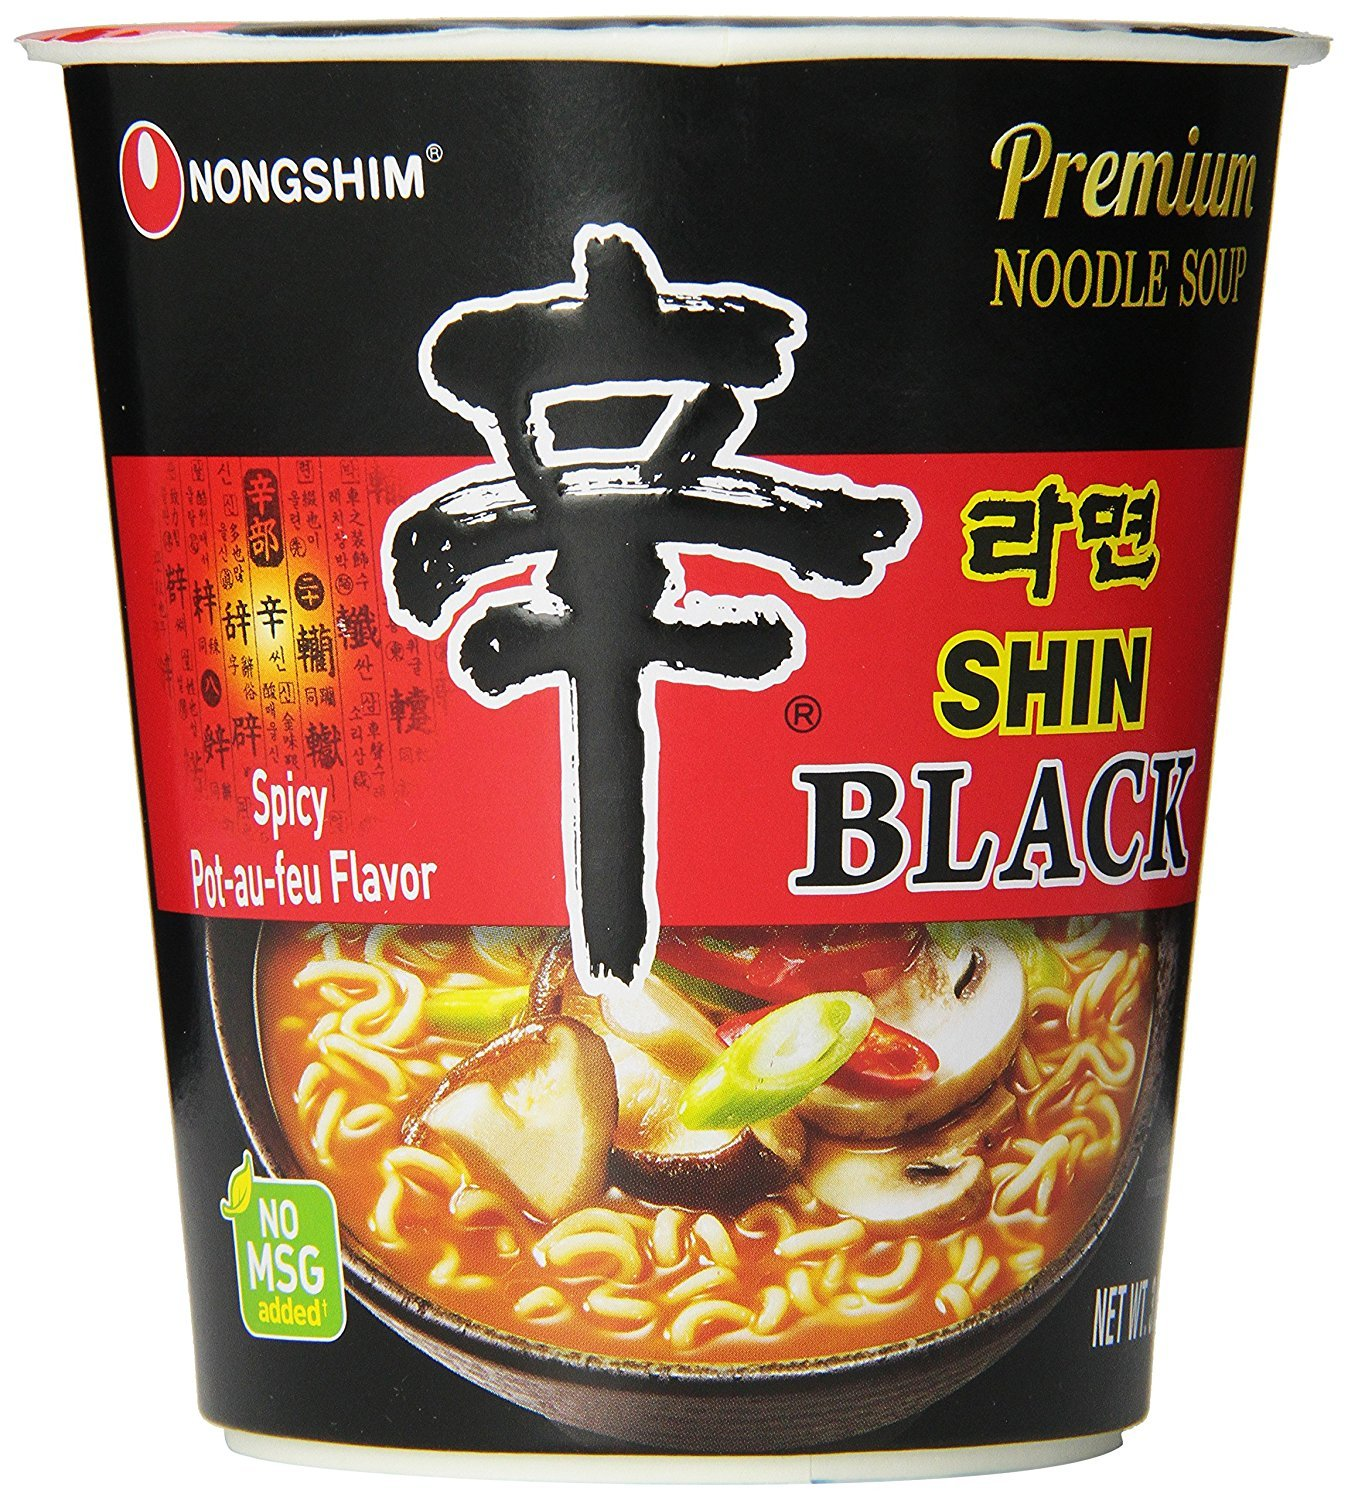 Nongshim Shin Black tJxpG Noodle Soup, Spicy, 3.56 Ounce, 6 Count (4 Pack)